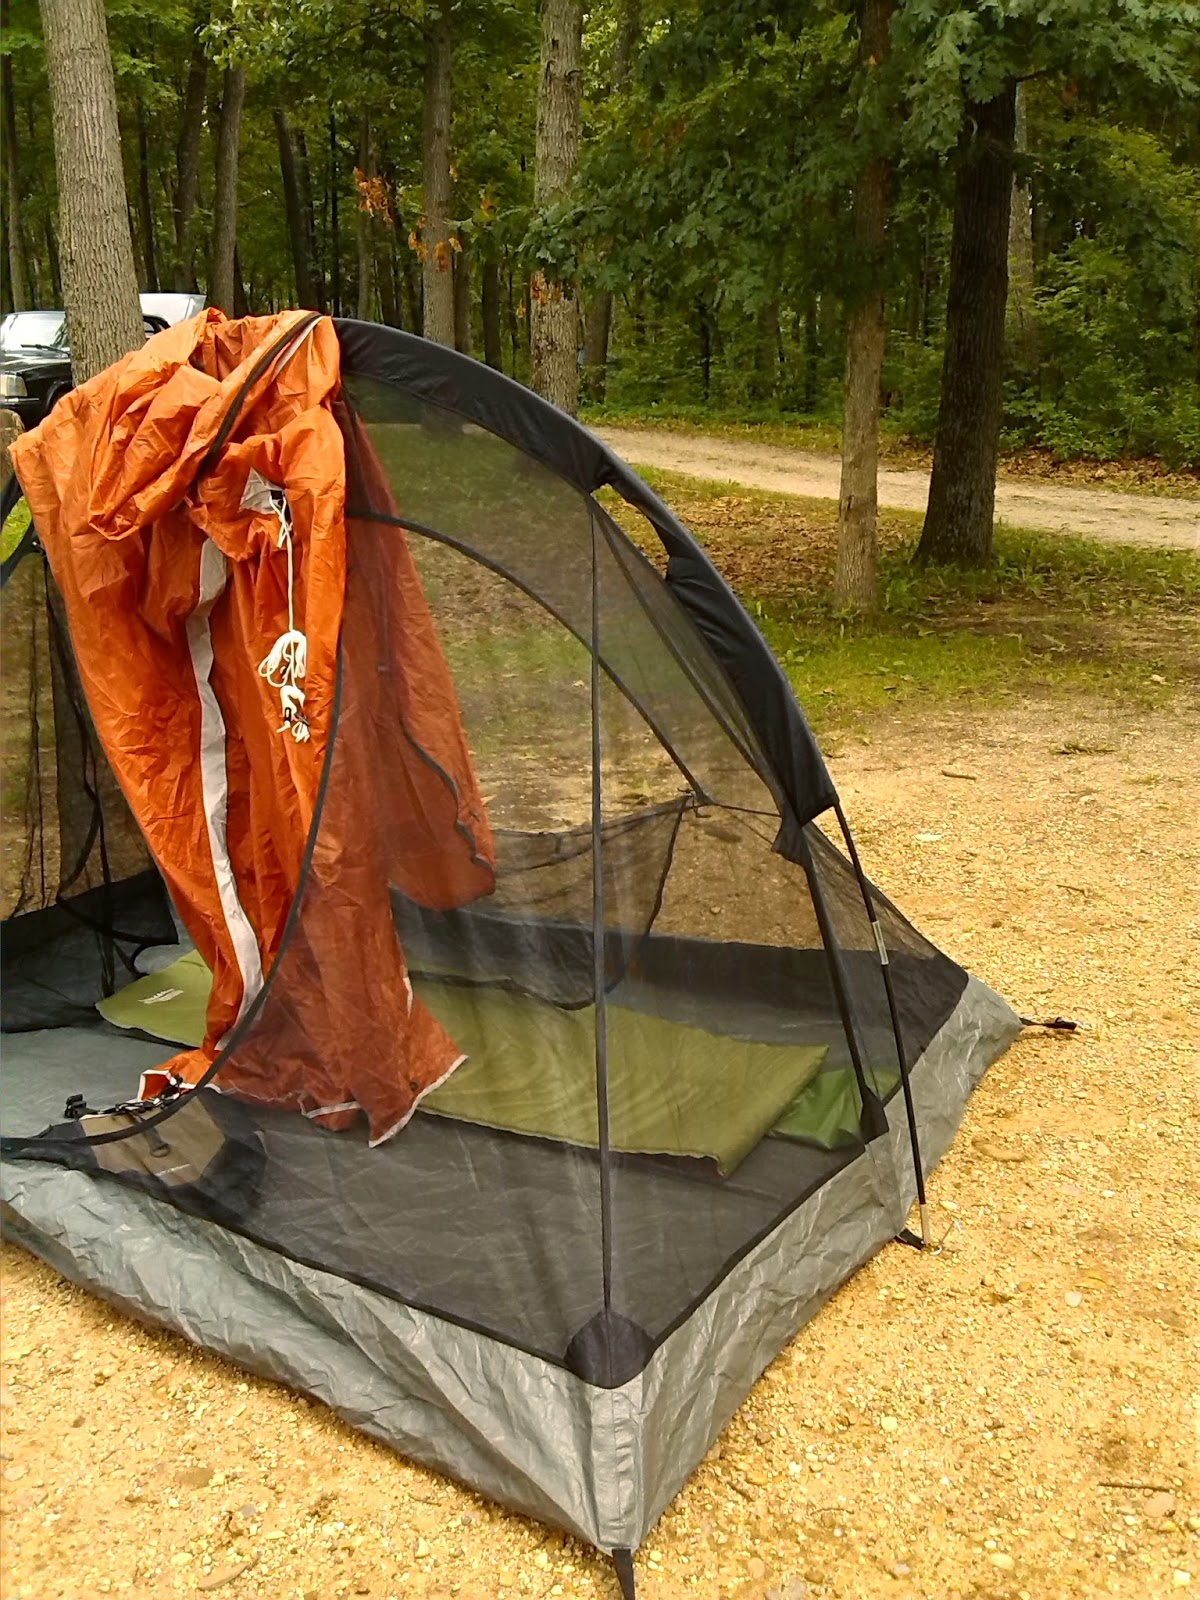 Inside You Can See The Pad And Red Fleece Sleeping Bag Liner I Think A 3 Season Tent Stays Warm Enough To Eliminate Need For Heavy